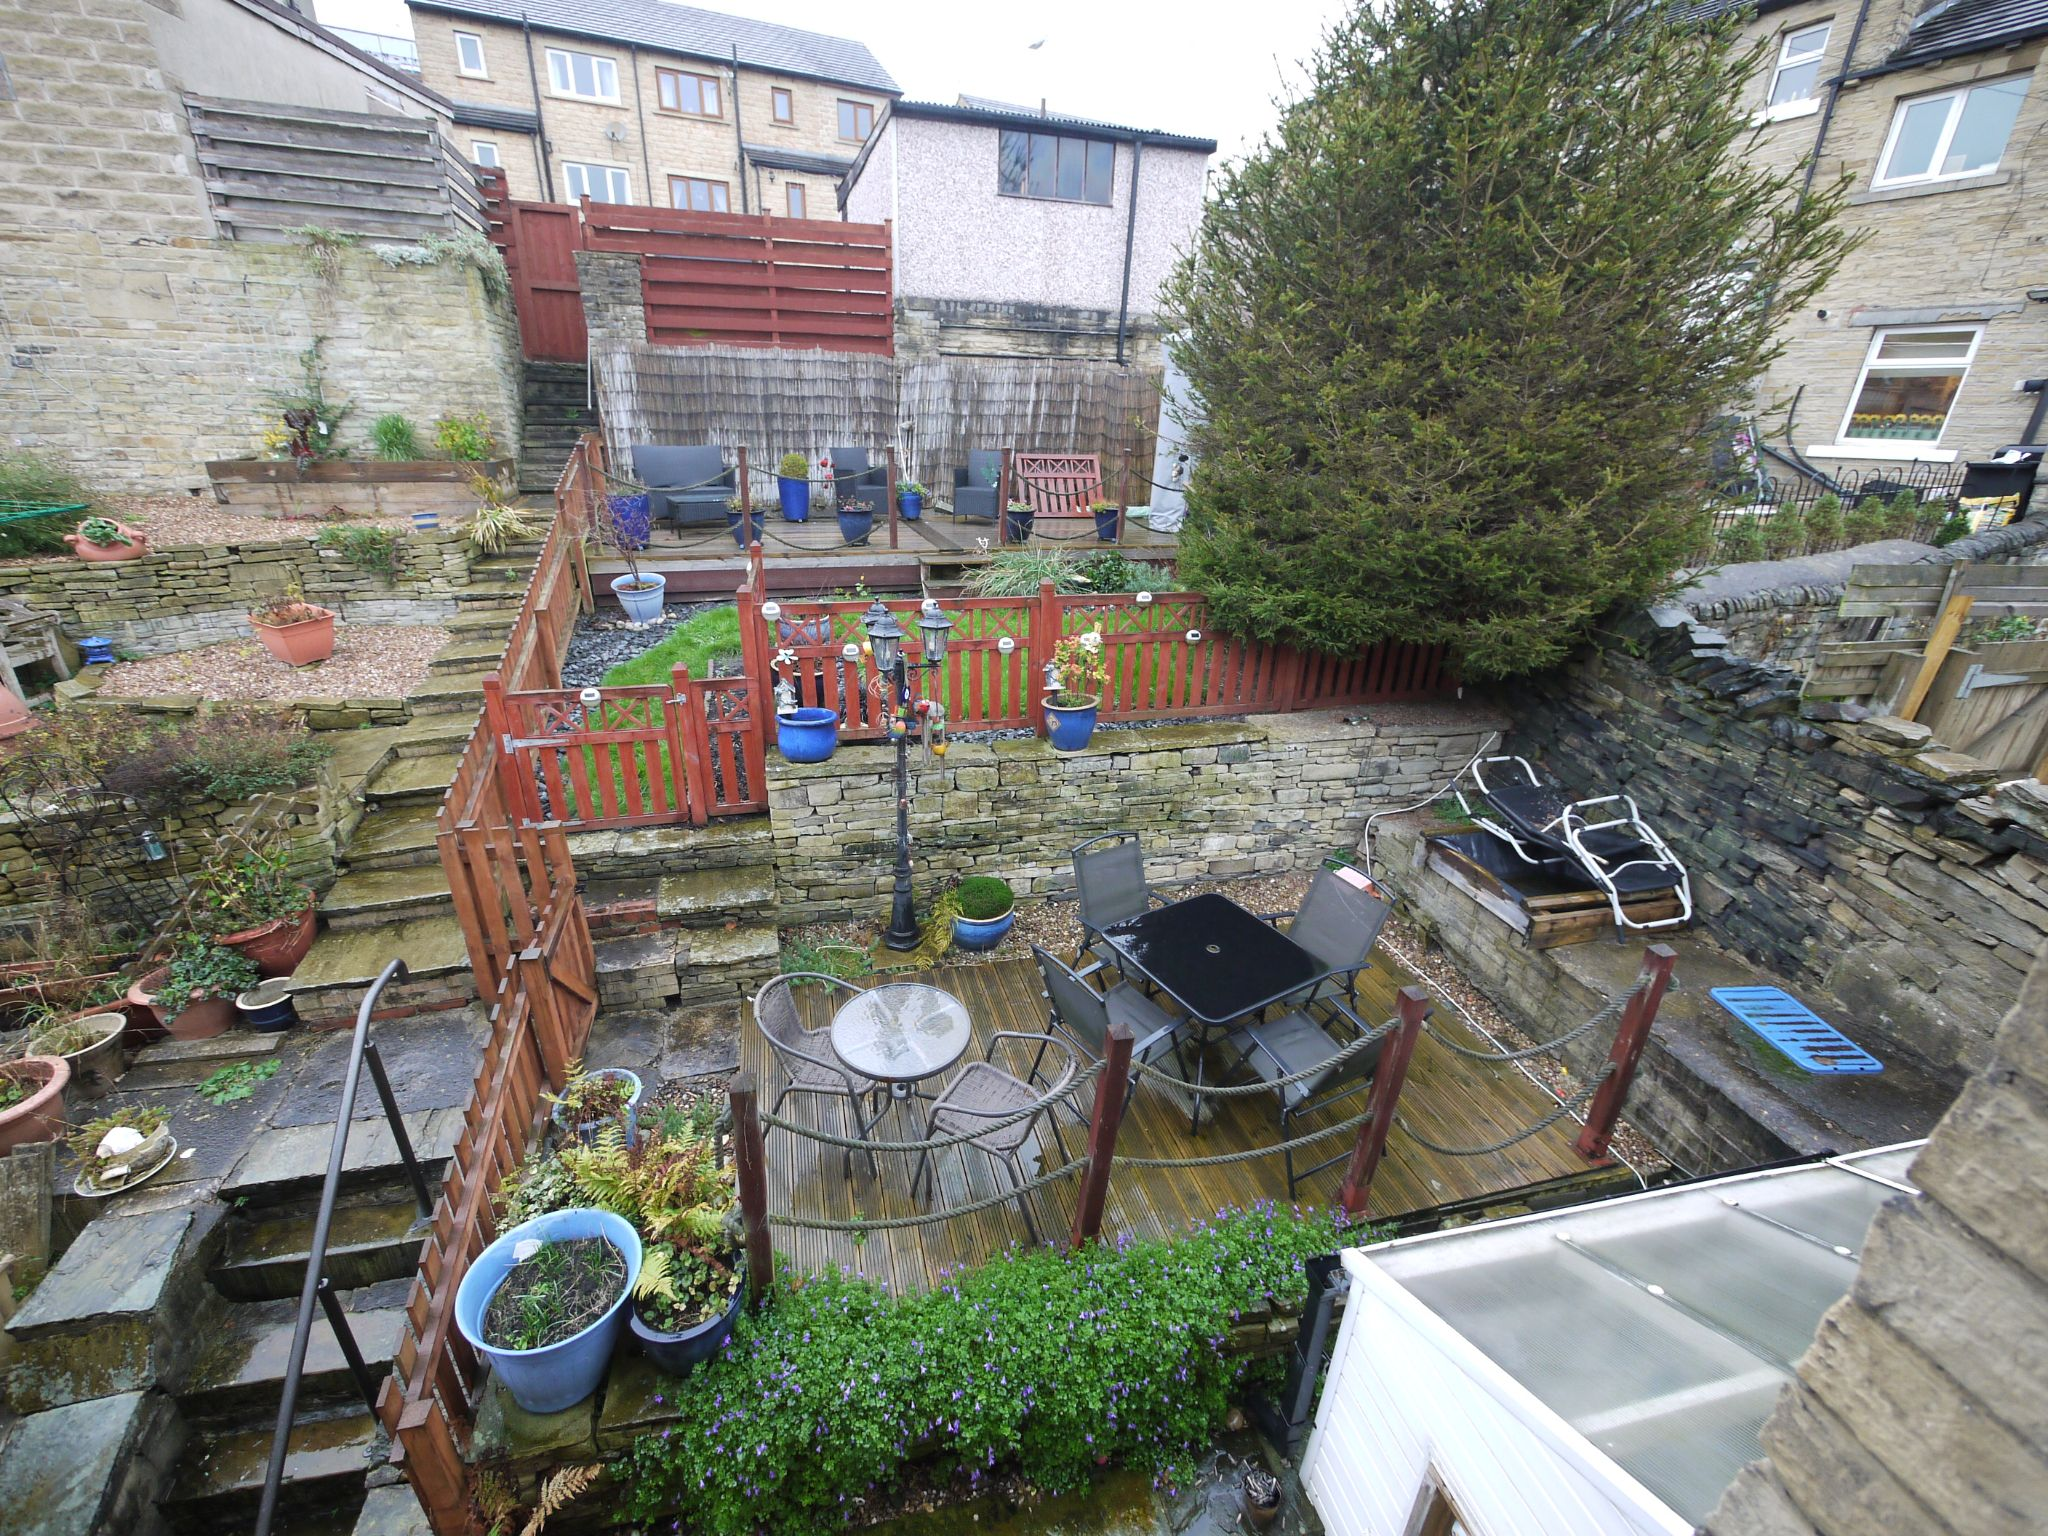 3 bedroom semi-detached house For Sale in Calderdale - Photograph 7.